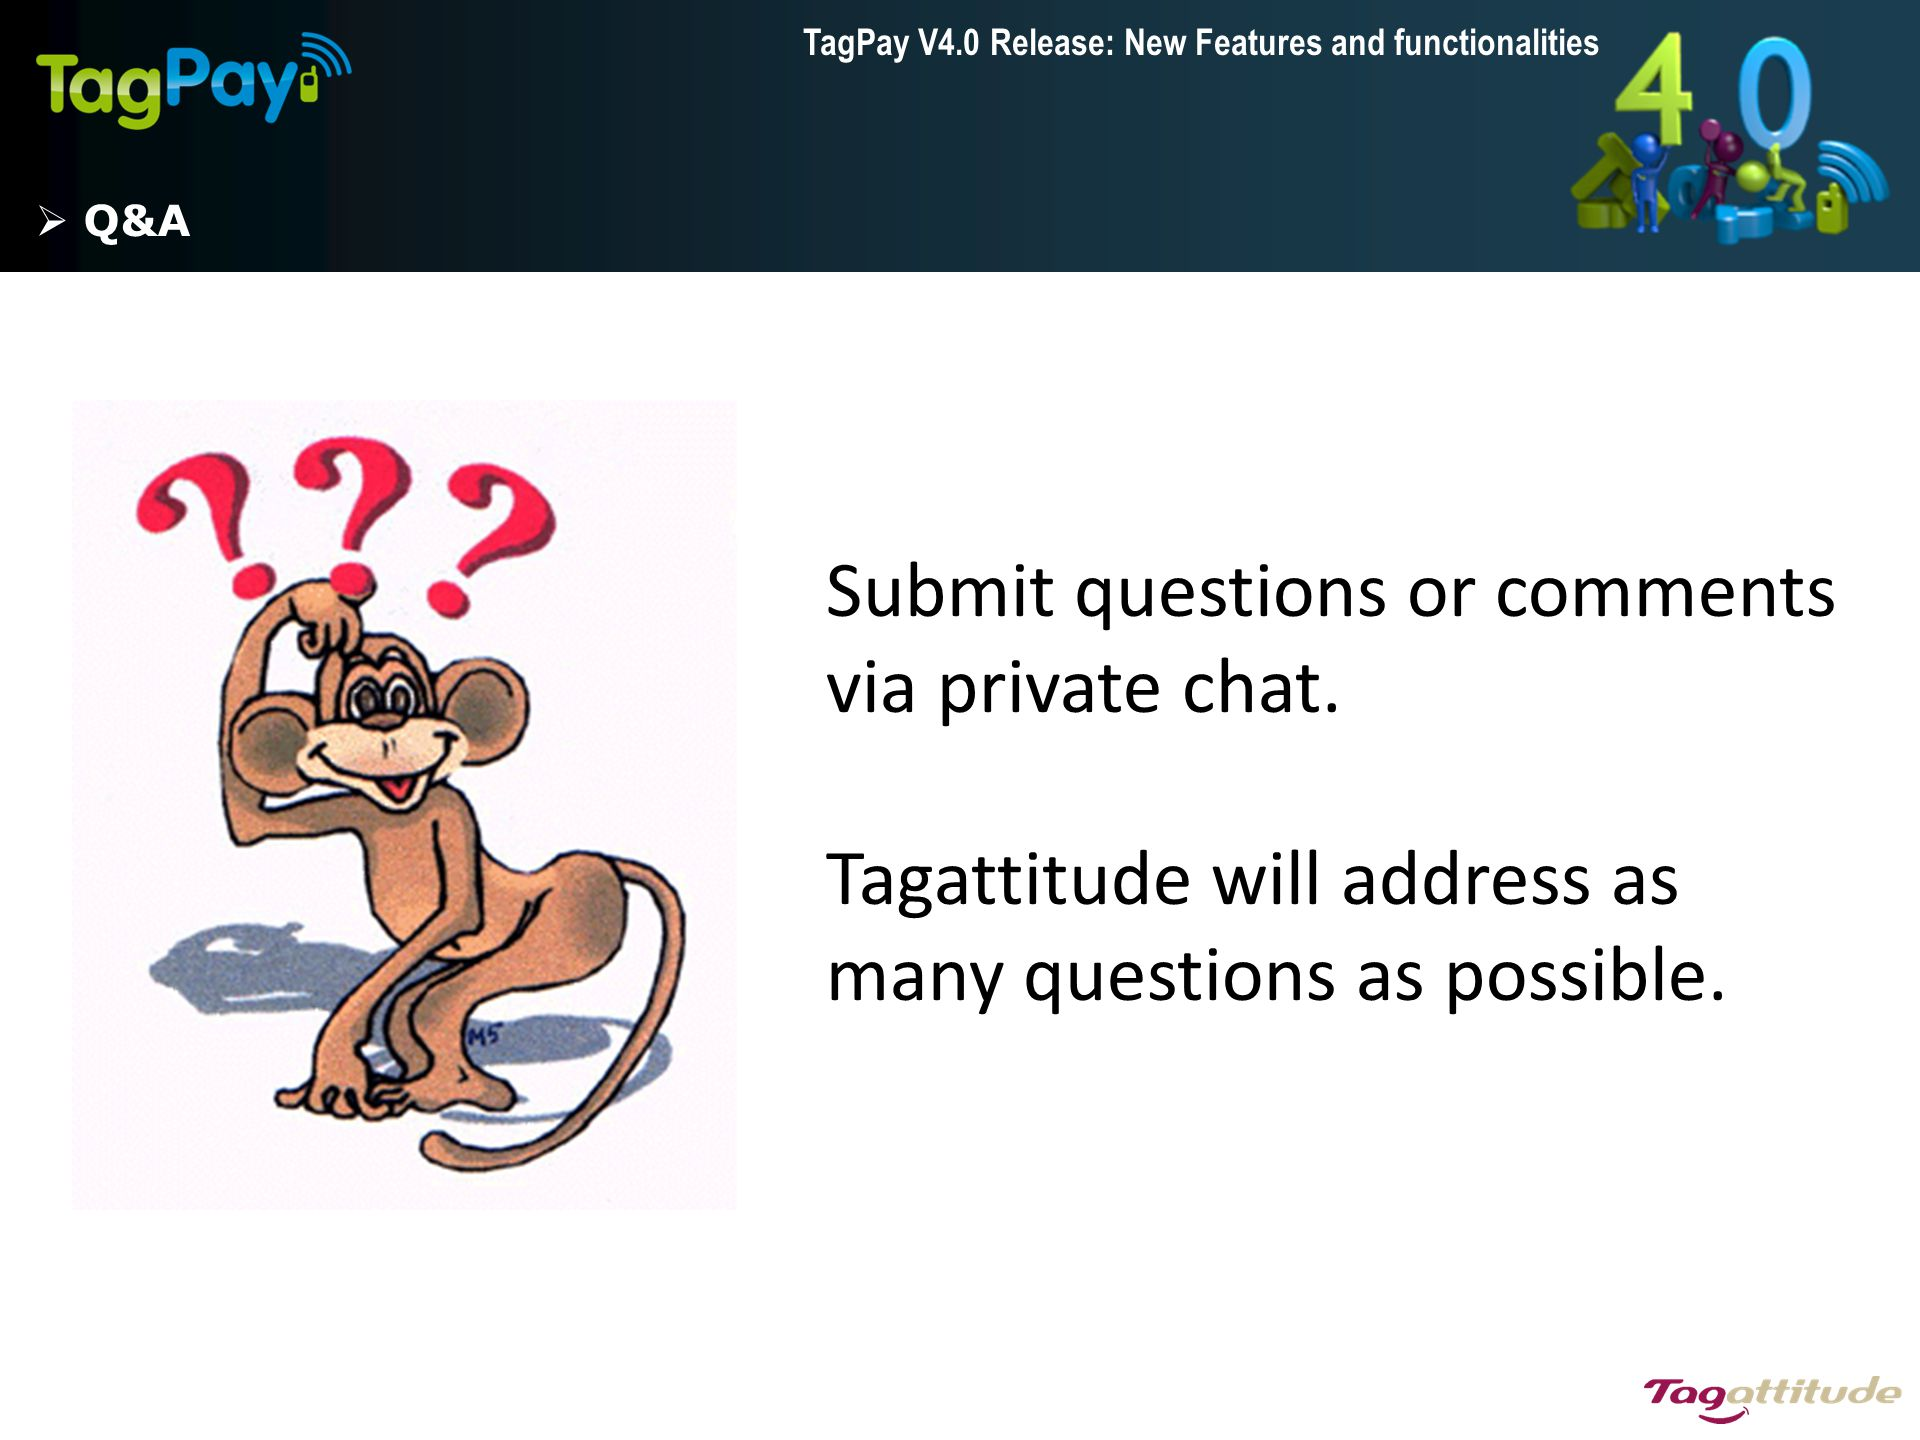 Submit questions or comments via private chat.